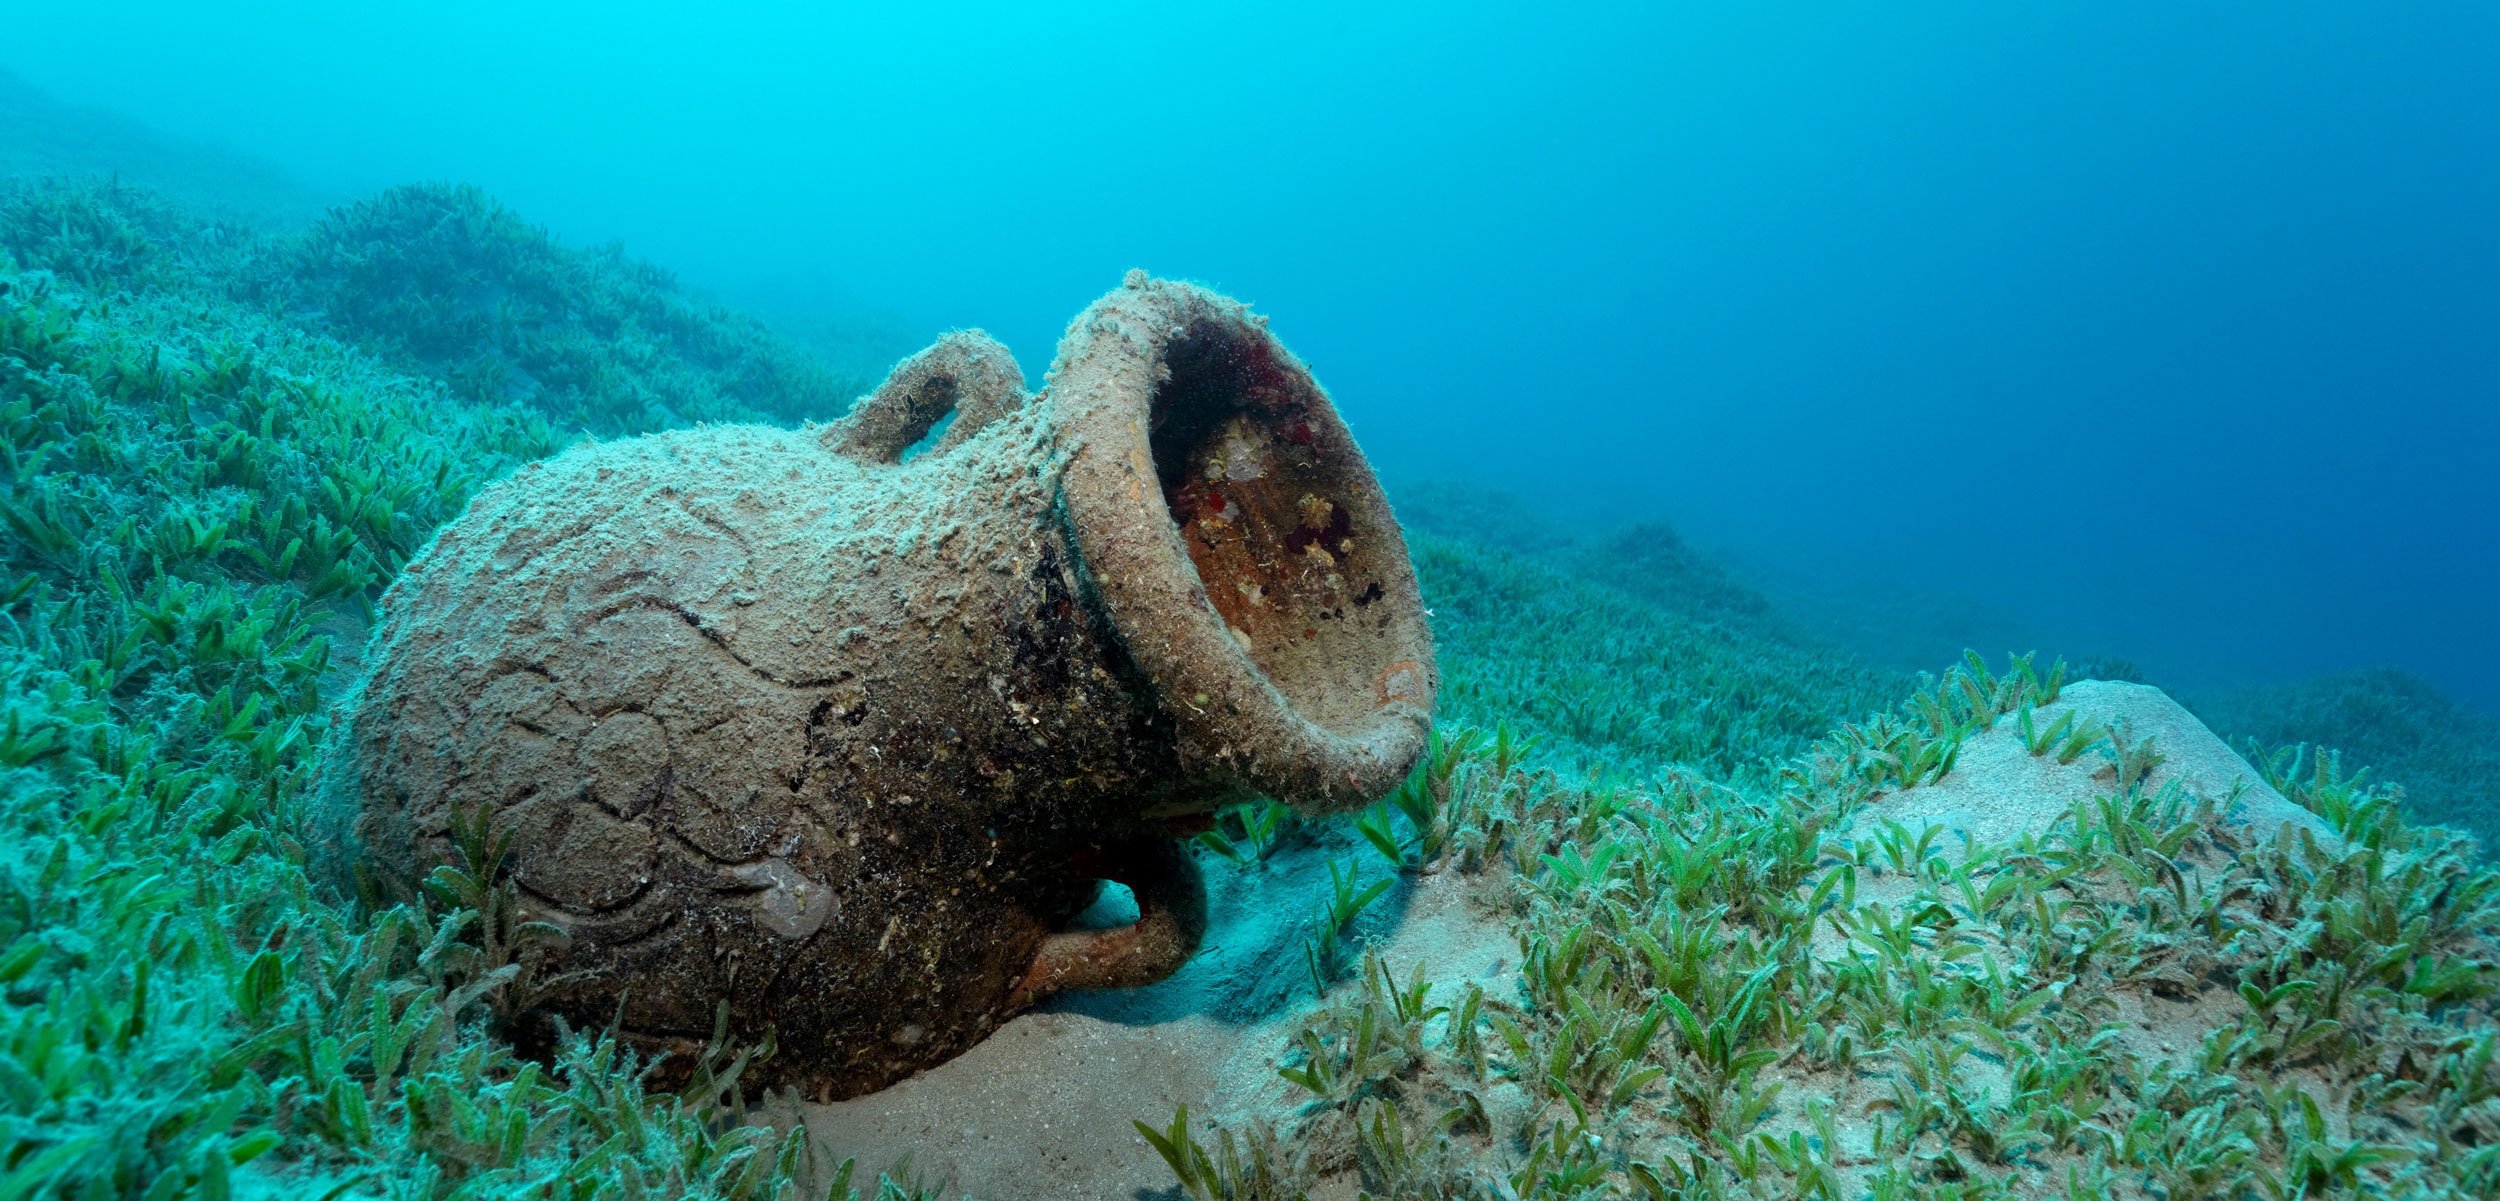 Amphora on seagrass meadow, Red Sea, Makadi Bay, Hurghada, Egypt